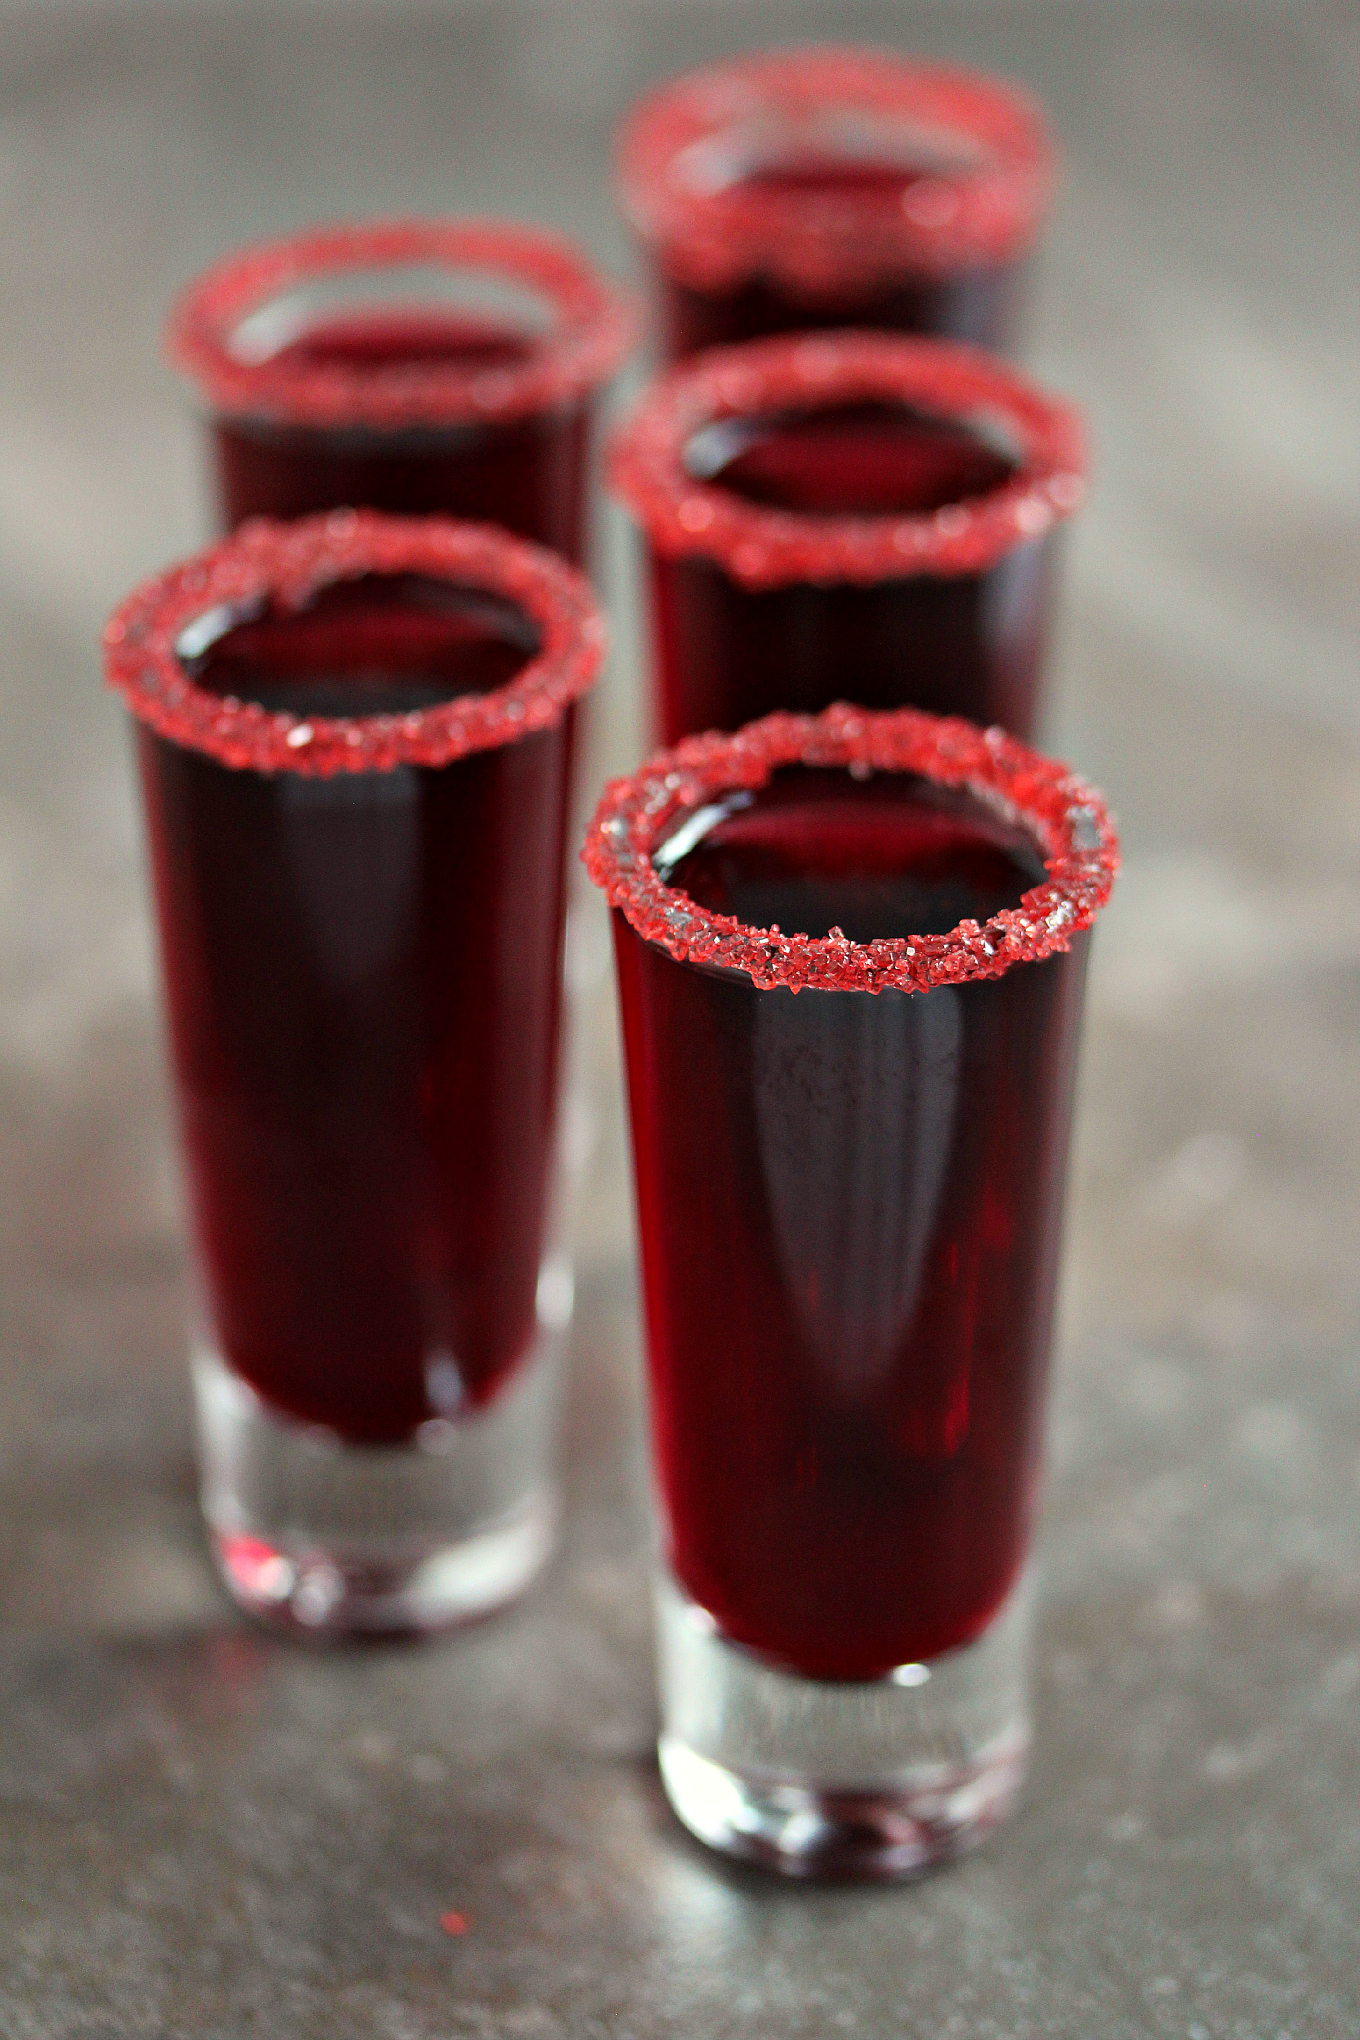 Walker blood sangria for dead eats recipes inspired by the walking dead walker blood sangria for dead eats recipes inspired by the walking dead just because altavistaventures Image collections